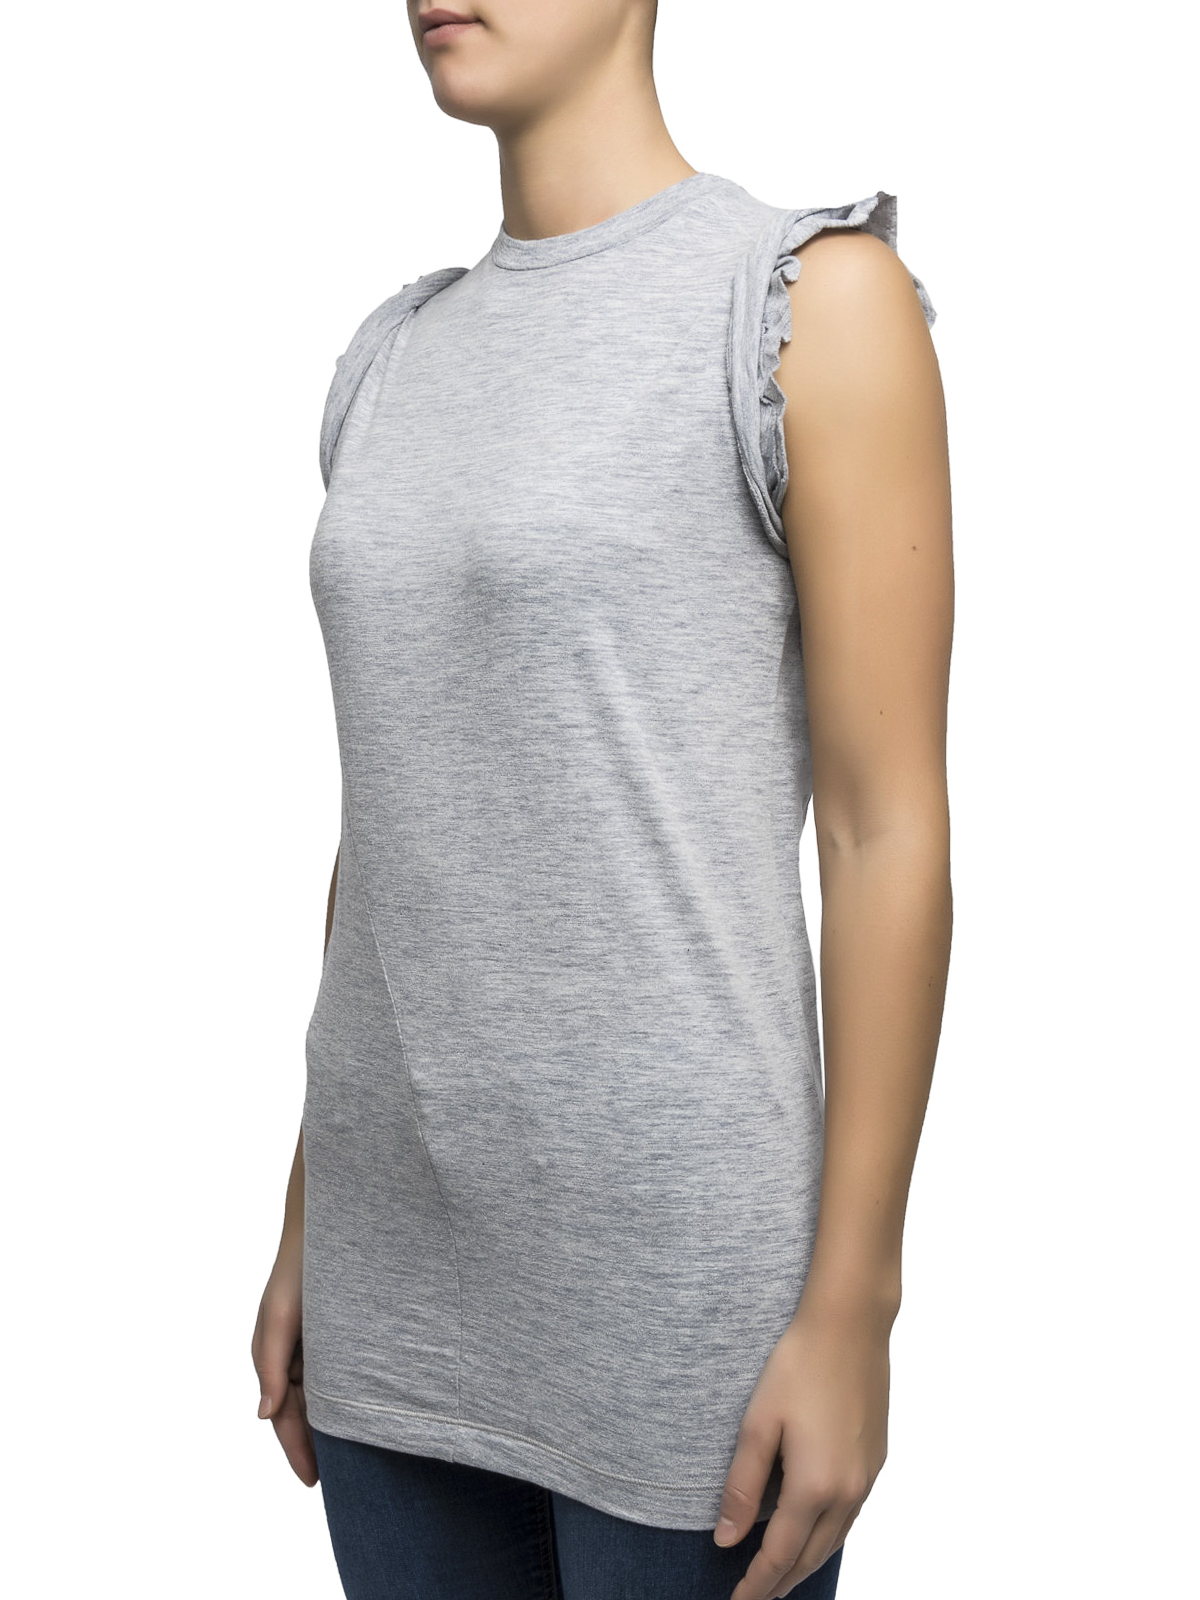 Perfect for layering or wear alone, petite tank tops from Bealls Florida come in a variety of colors and styles, great for workdays or casual weekends.